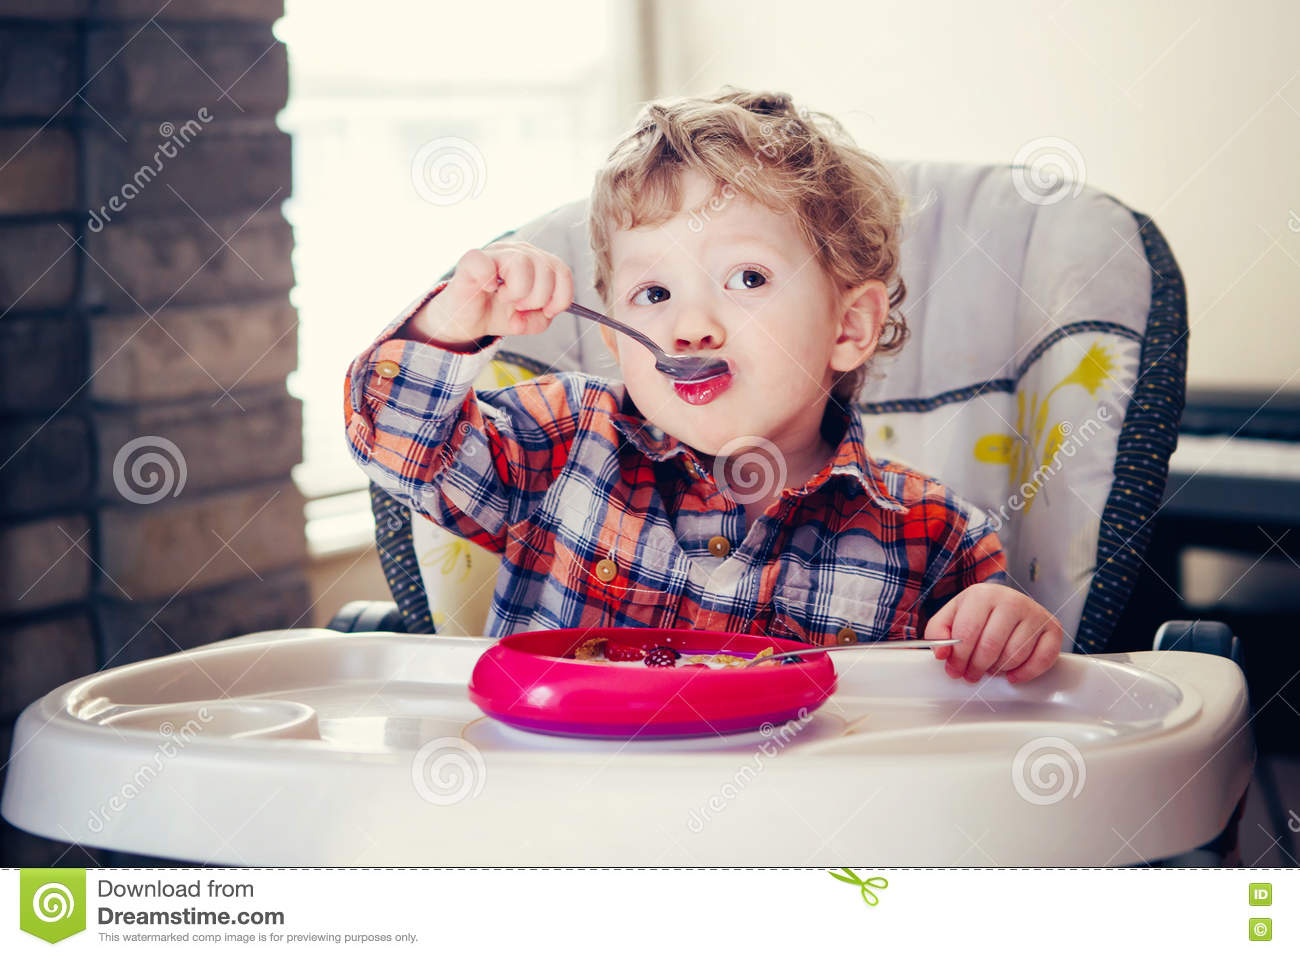 Boy High Chairs Portrait Of Cute Adorable Caucasian Child Kid Boy Standing